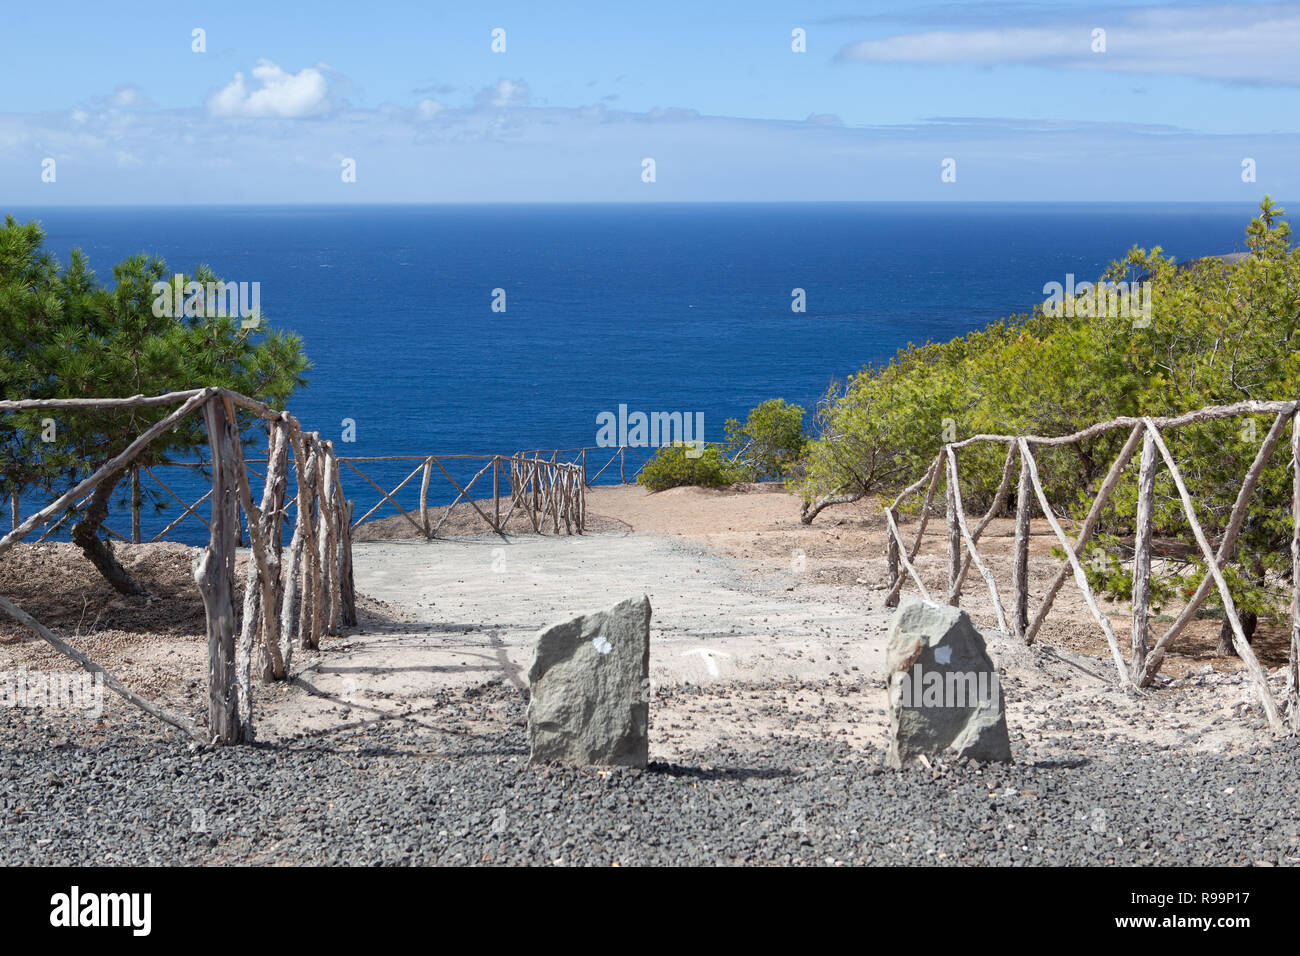 A path to the sea on the island of Porto Santo - Stock Image